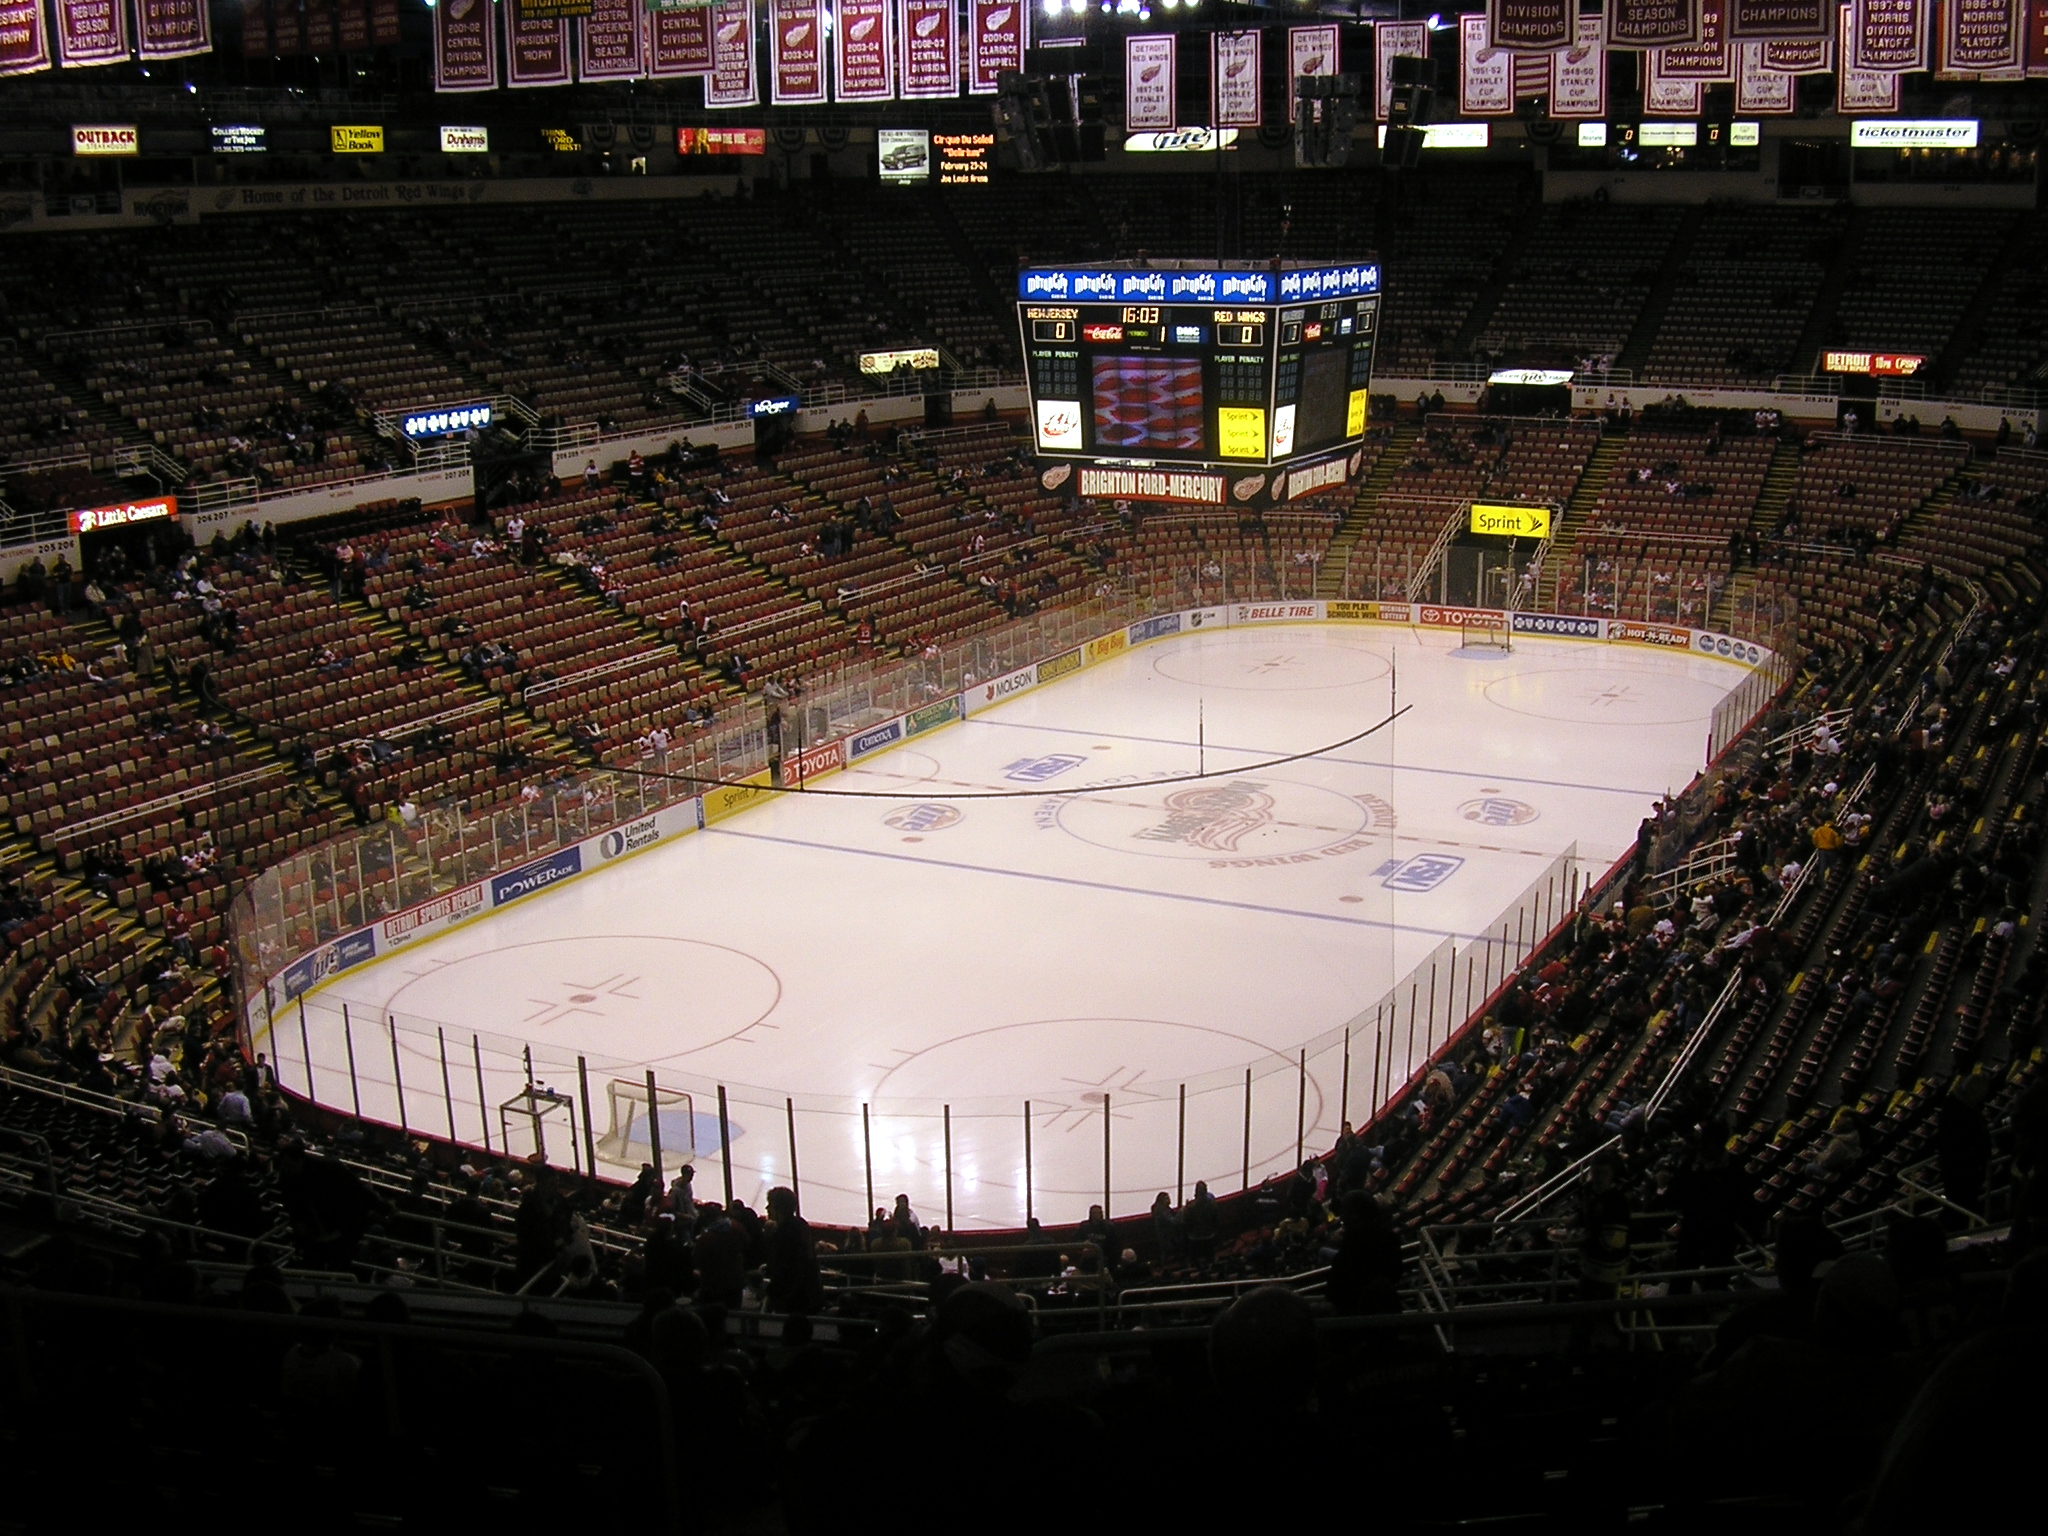 <a href='http://www.ticketsreview.com/venue/joe-louis-arena-schedule/'>Joe Louis Arena tickets</a>